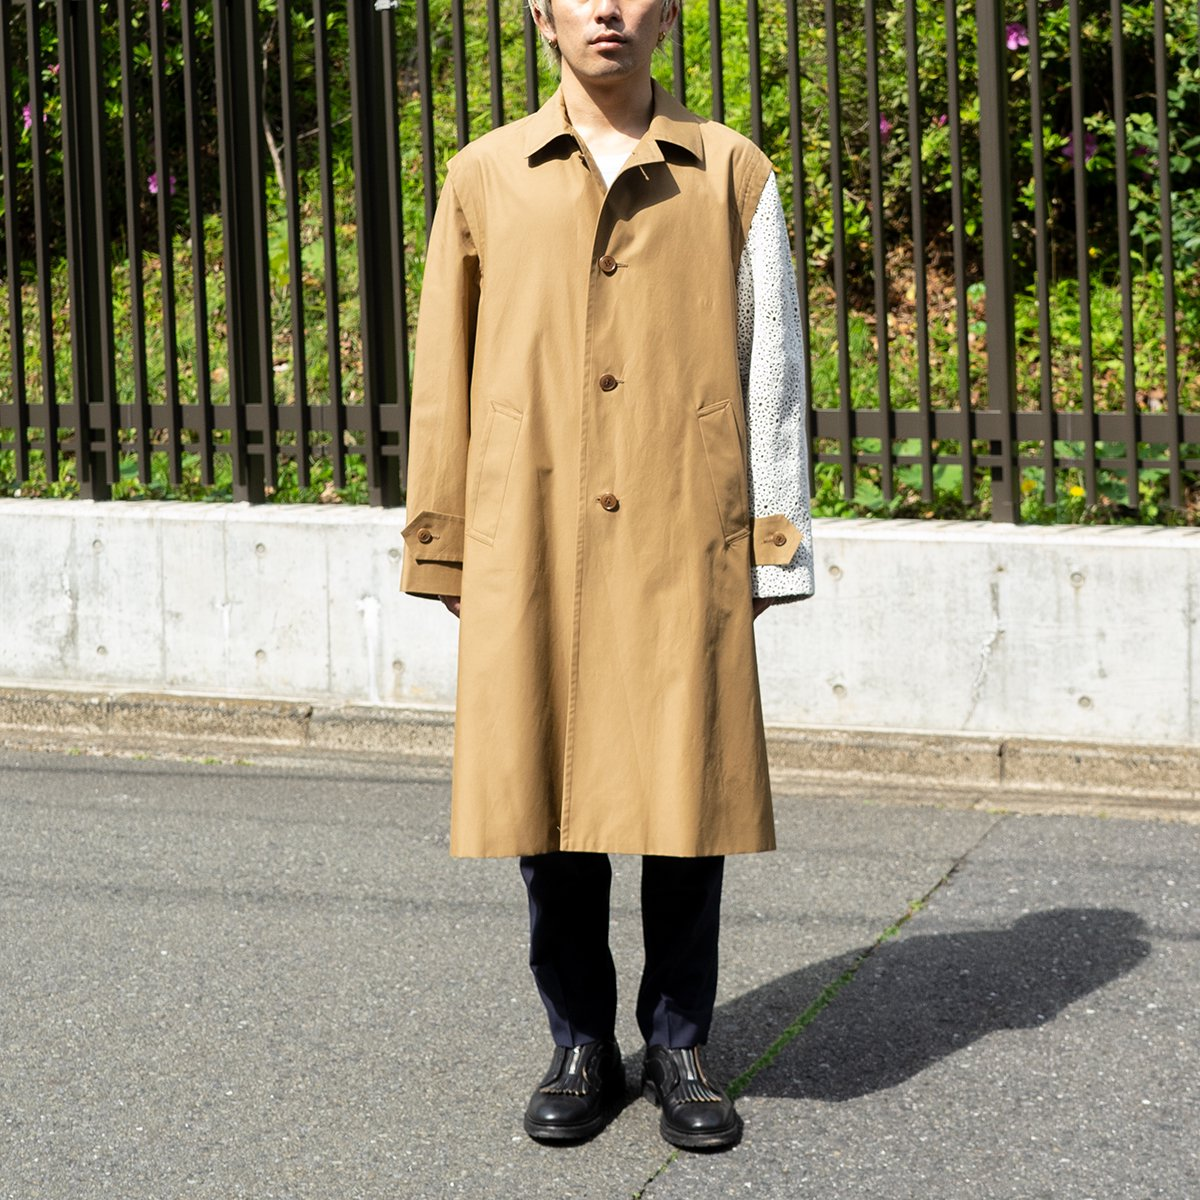 <img class='new_mark_img1' src='https://img.shop-pro.jp/img/new/icons5.gif' style='border:none;display:inline;margin:0px;padding:0px;width:auto;' />OLMETEX COTTON NYLON ONE ARM LOWDEN COAT / BEIGE